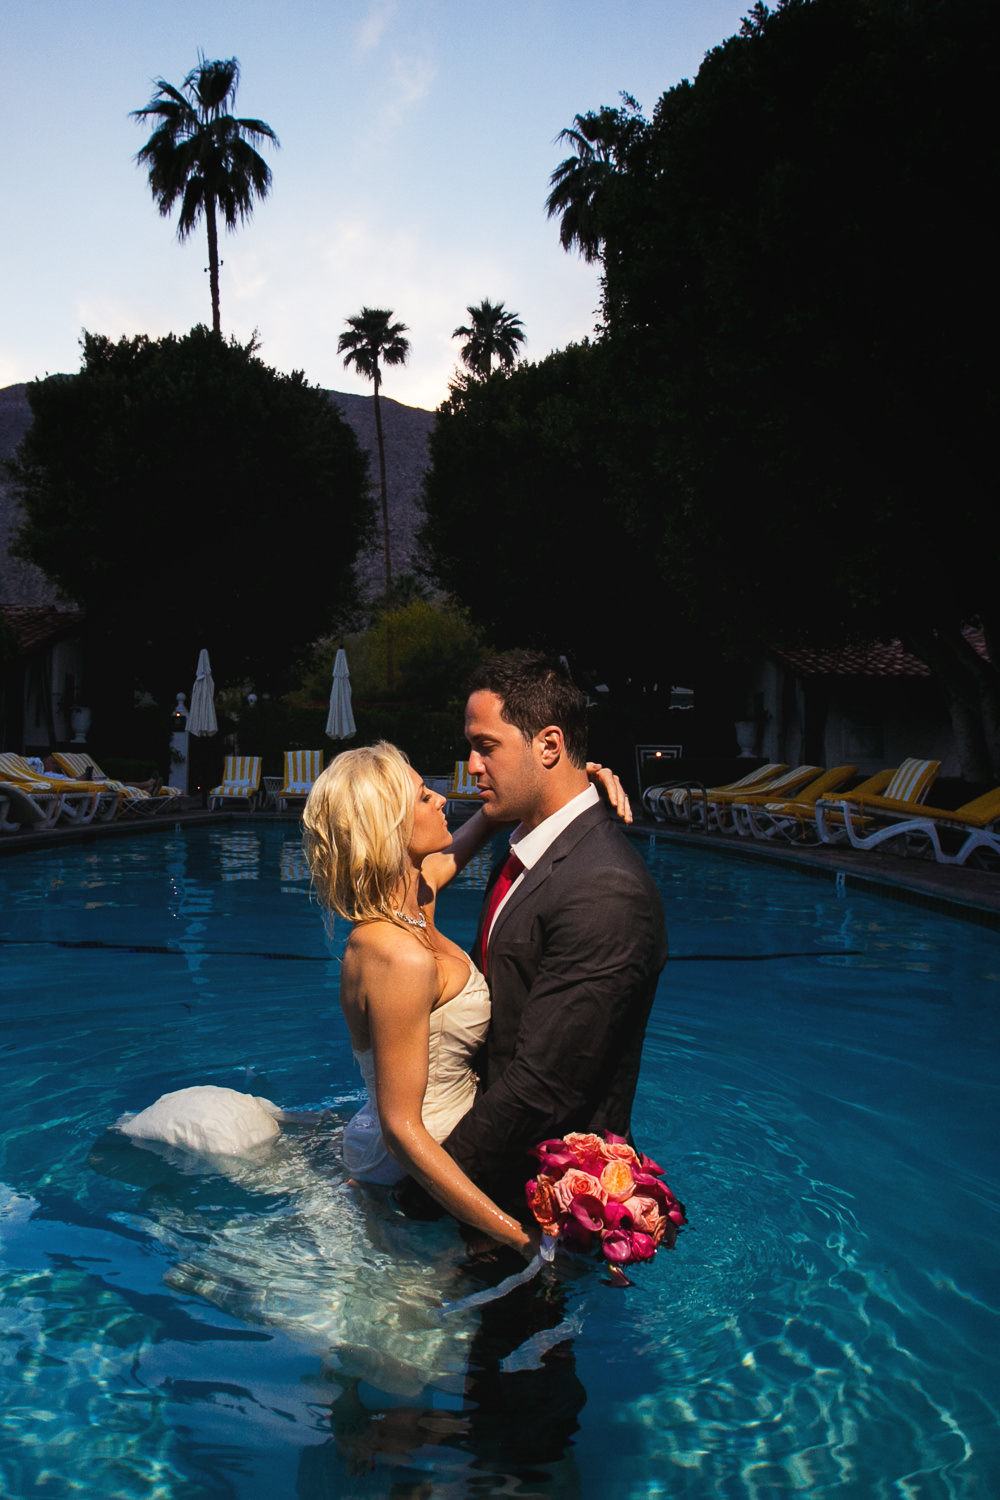 Avalon Palm Springs Photographer - Embracing in the pool fully dressed